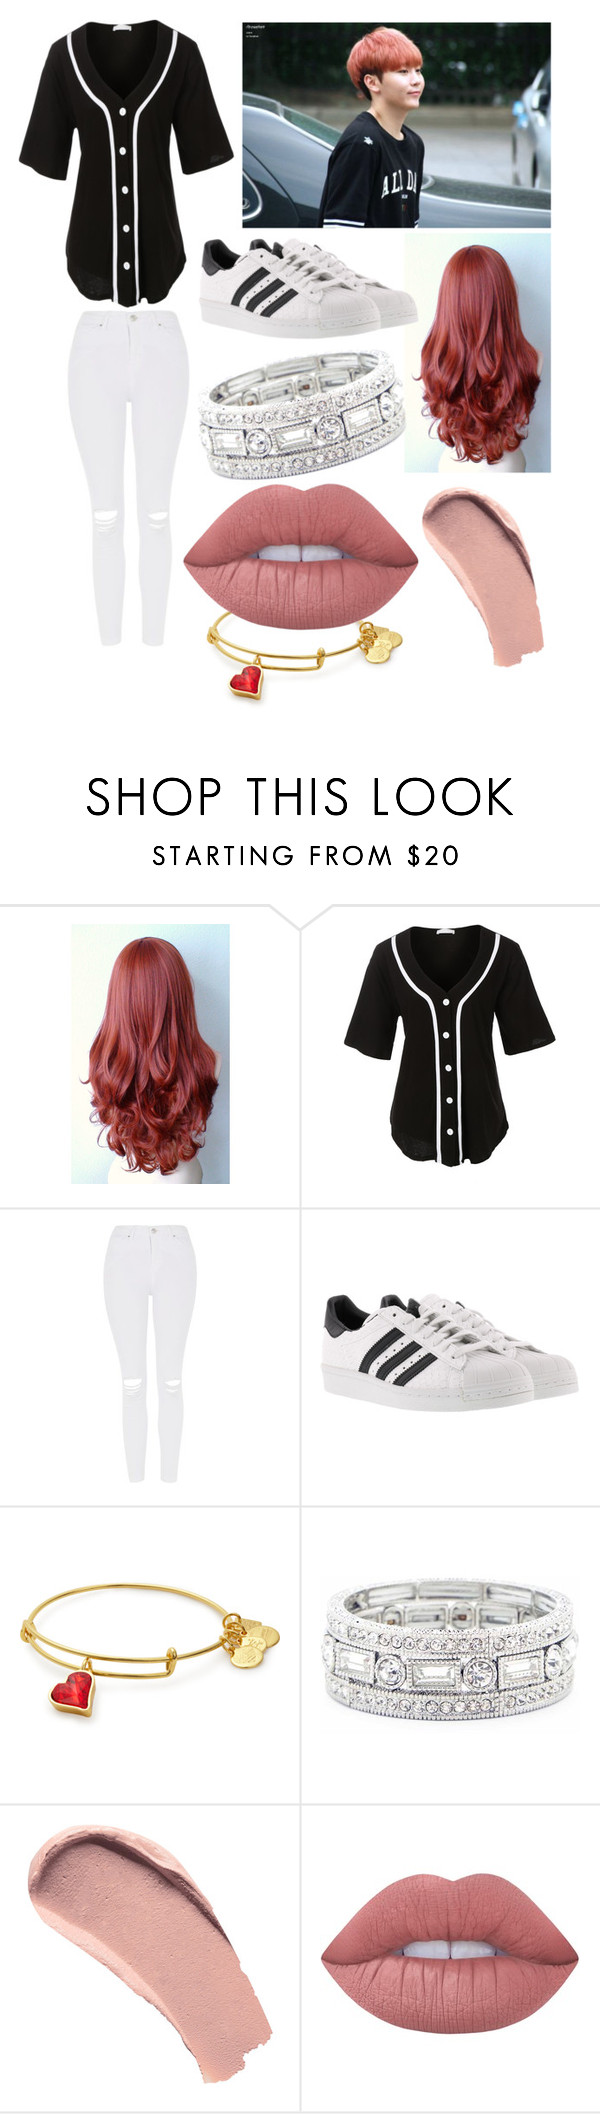 """""""Seungkwan."""" by brib978 ❤ liked on Polyvore featuring LE3NO, Topshop, adidas, Sole Society, Burberry and Lime Crime"""